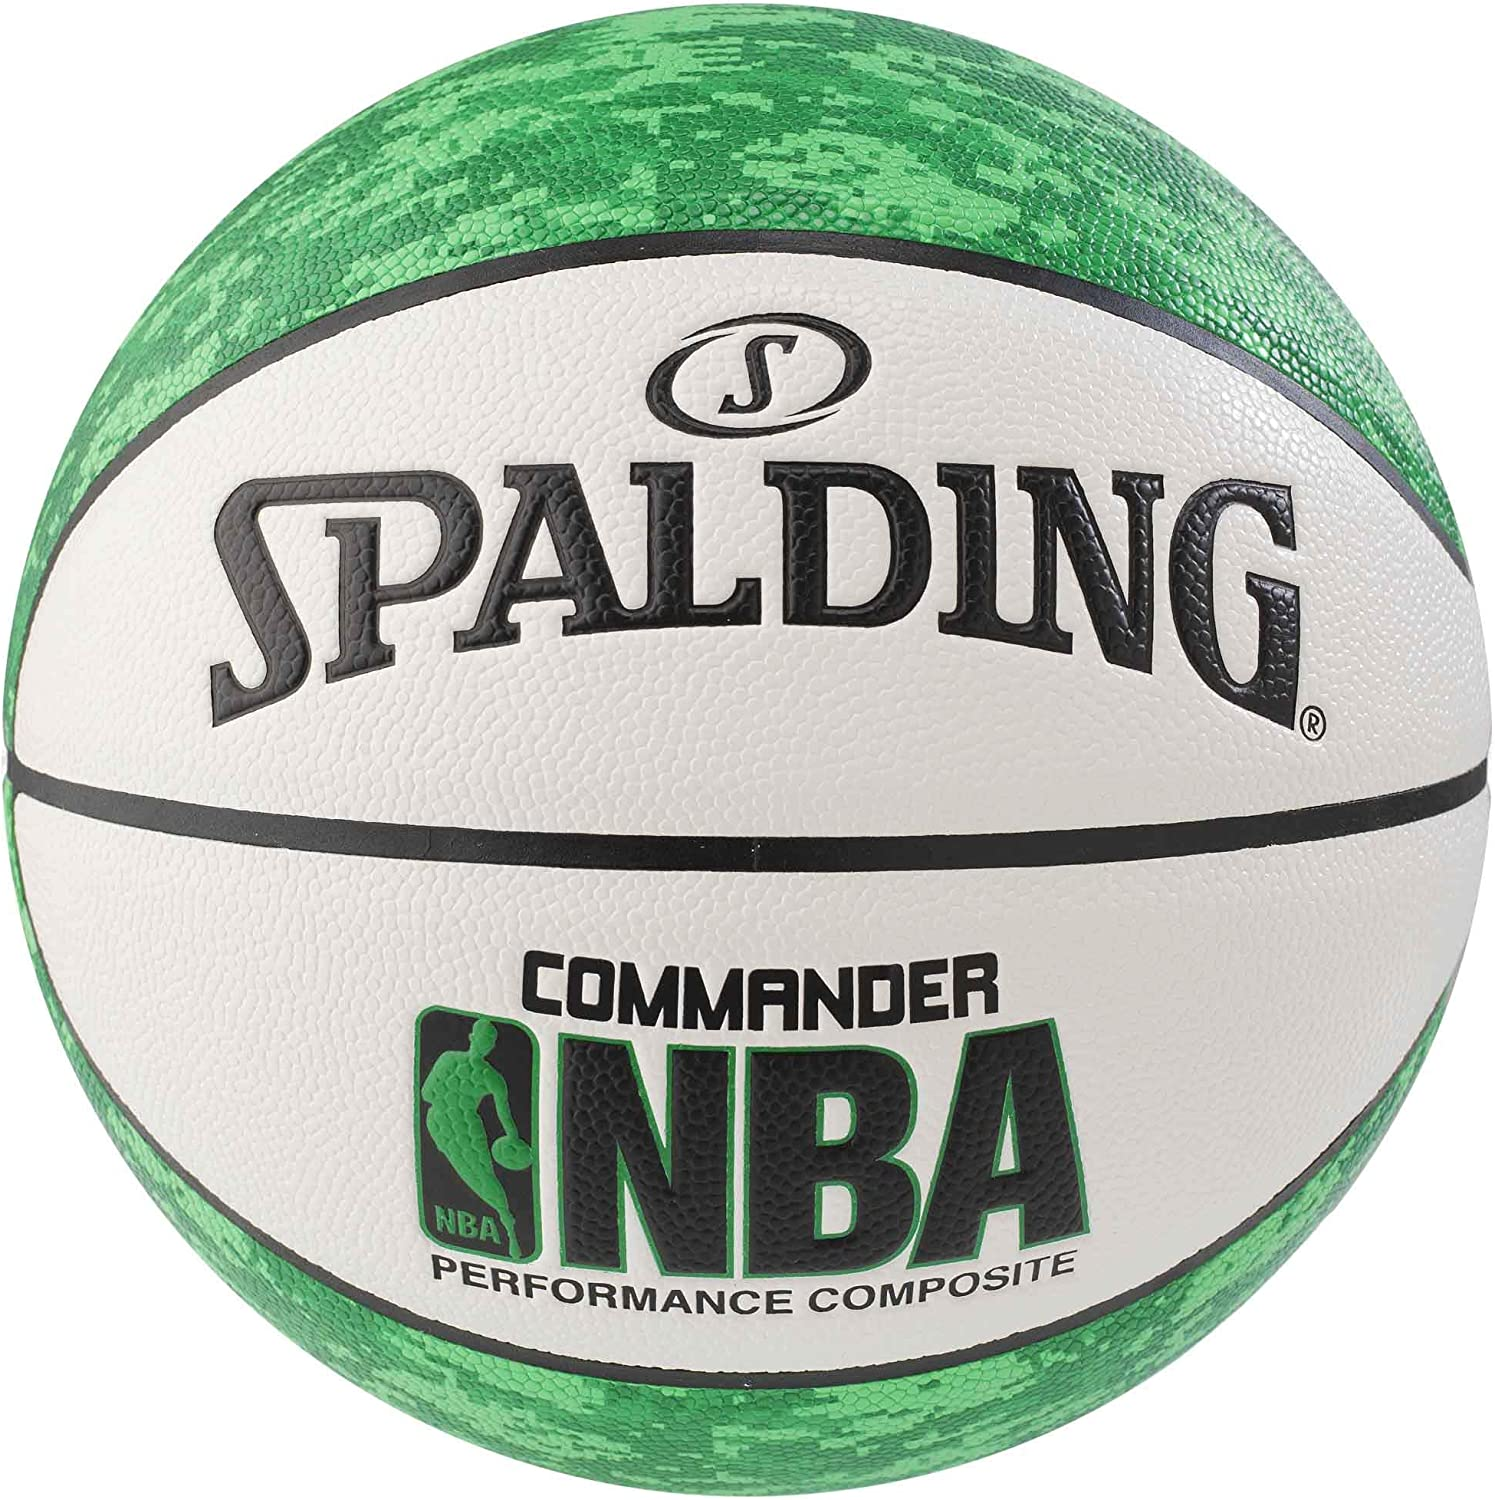 Spalding NBA All Conferencia Baloncesto: Amazon.es: Deportes y ...